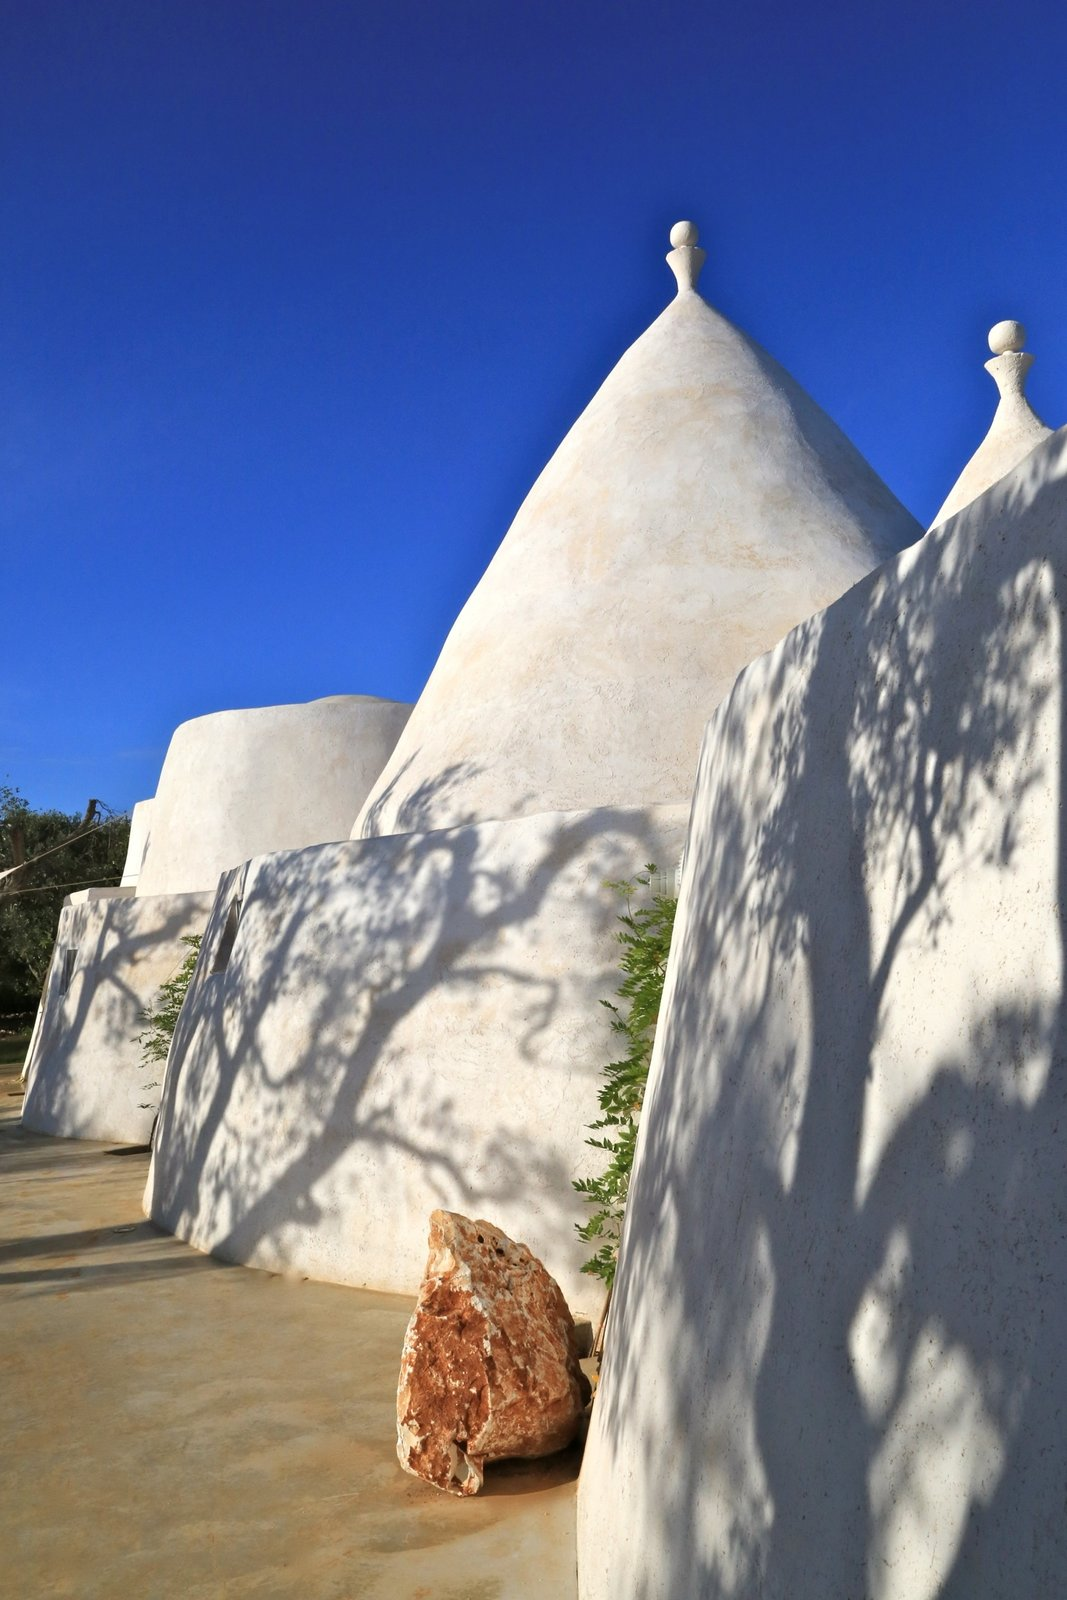 Photo 11 of 11 in Ever Wanted to Stay in an Ancient Trullo in Puglia, Italy?